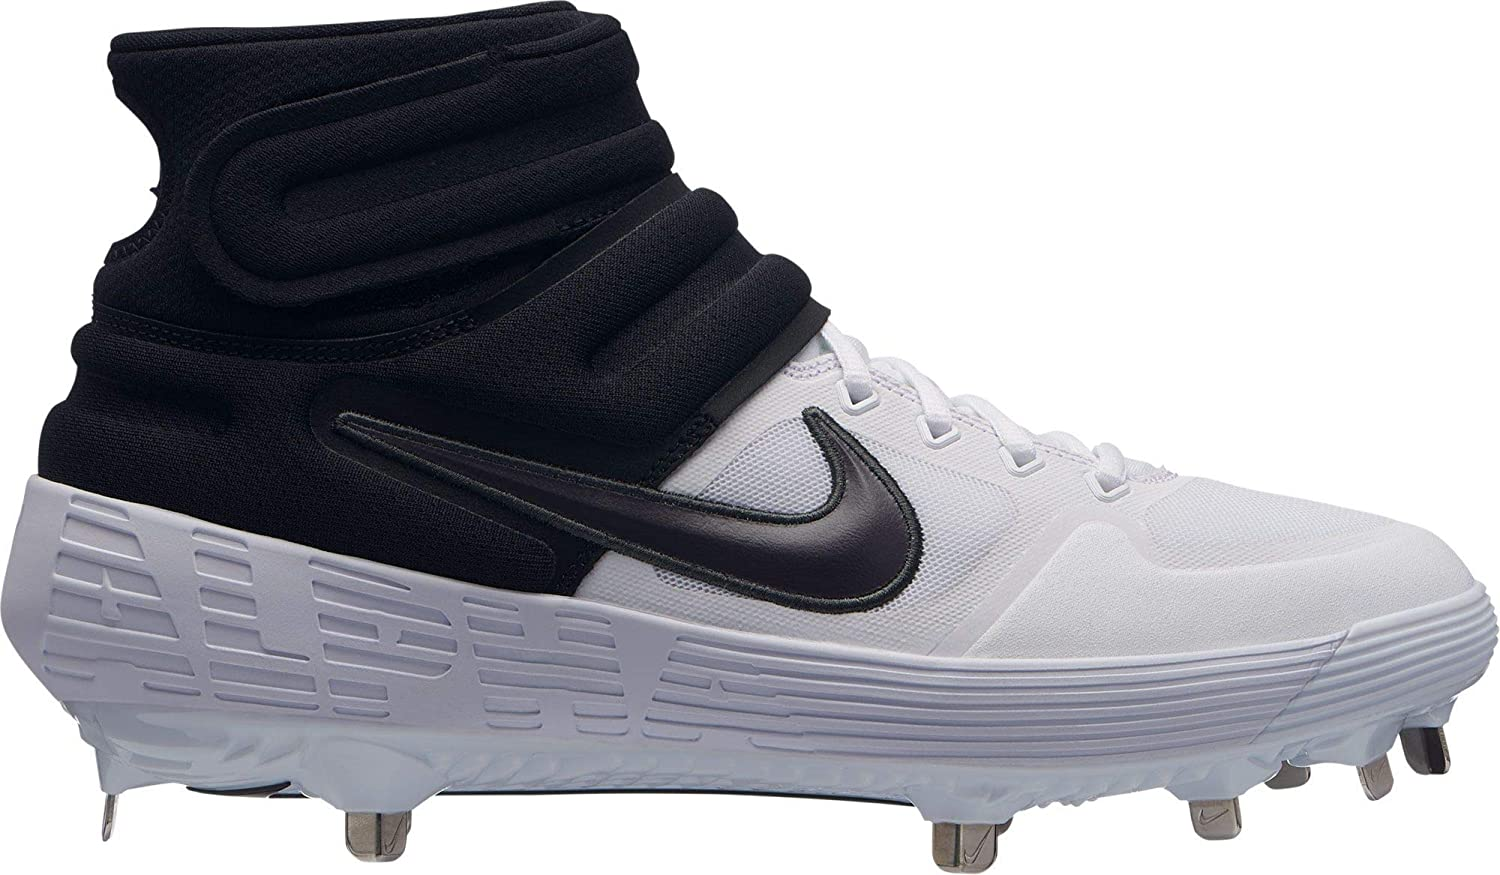 c83ee98f607 Amazon.com  Nike Men s Alpha Huarache Elite 2 Mid Baseball Cleats  Shoes